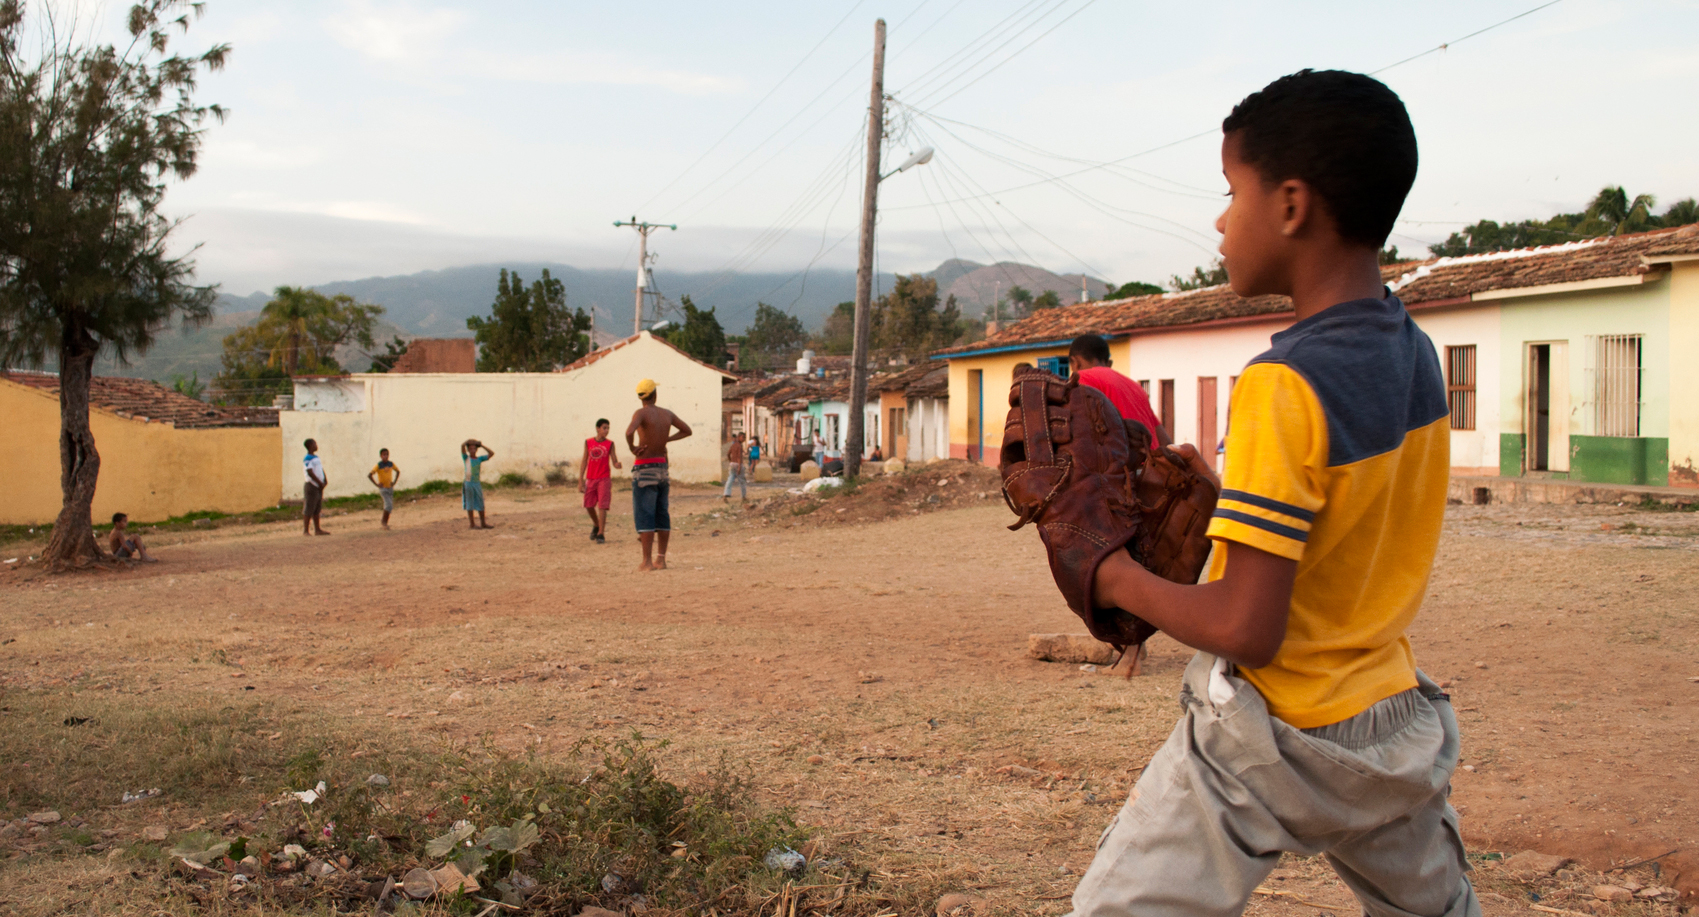 Kids playing baseball in a plot in a small village of Trinidad, Cuba.